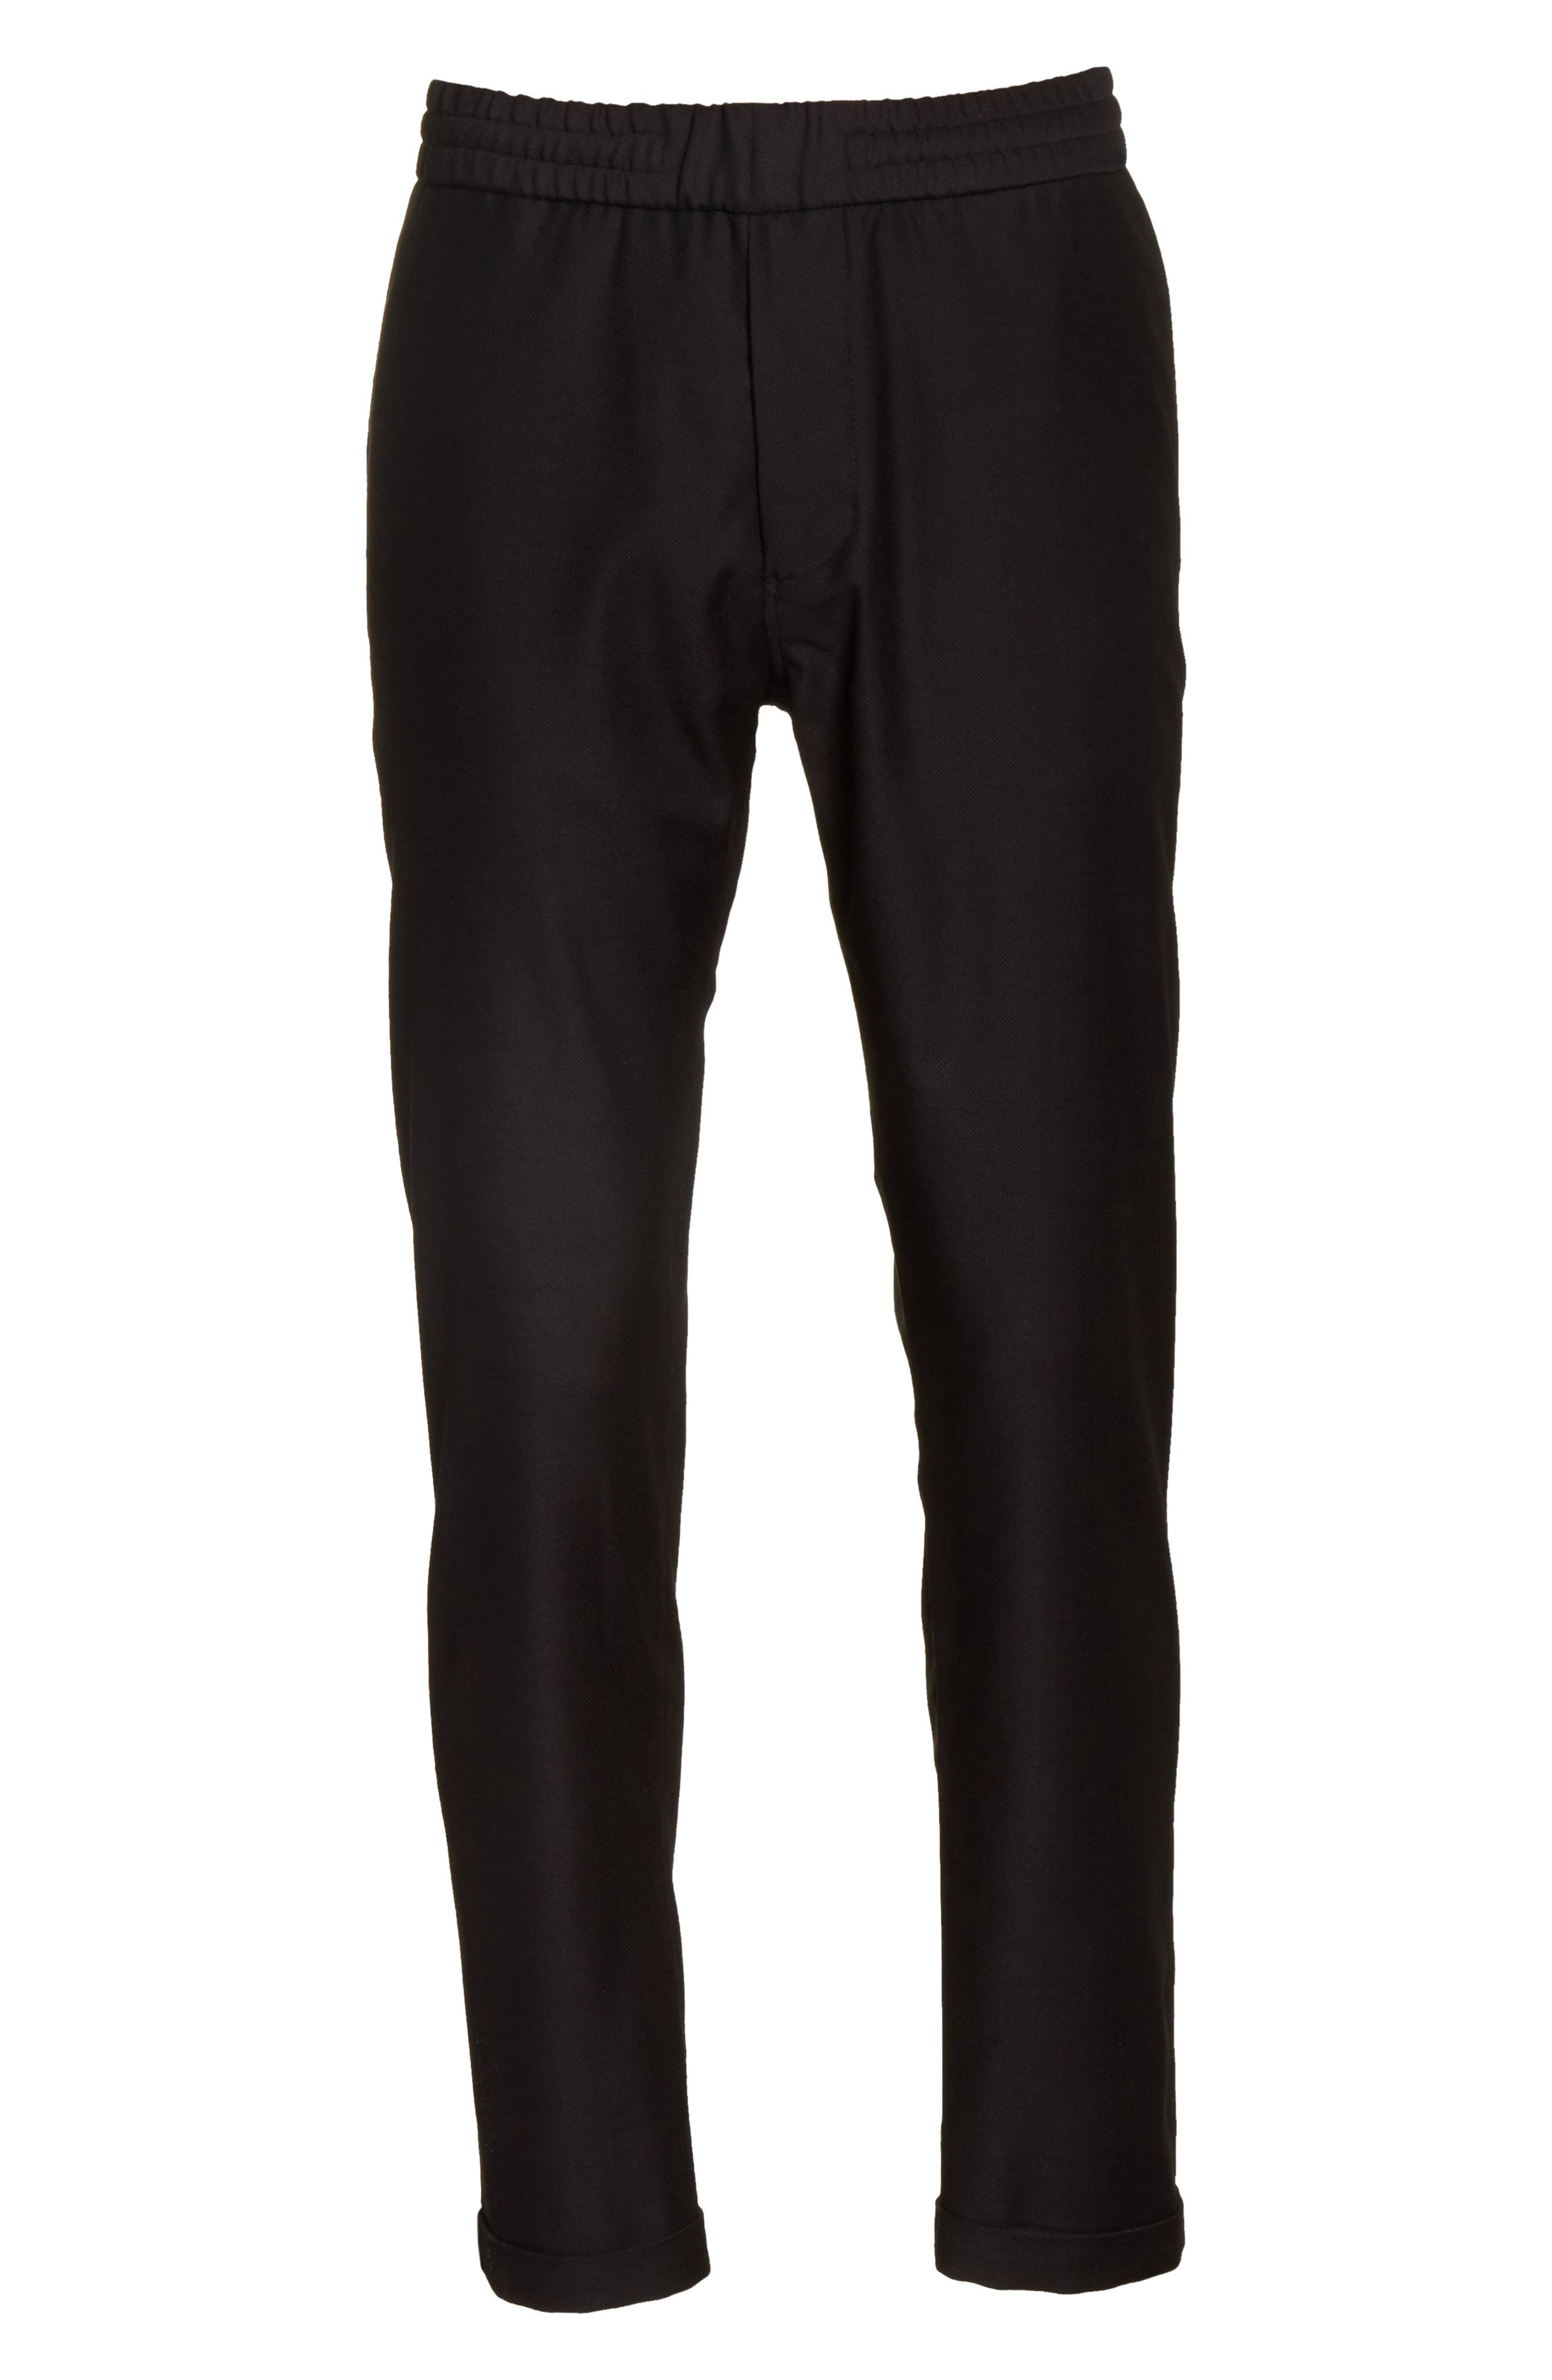 Drawstring Wool Trousers,                             Alternate thumbnail 6, color,                             Black